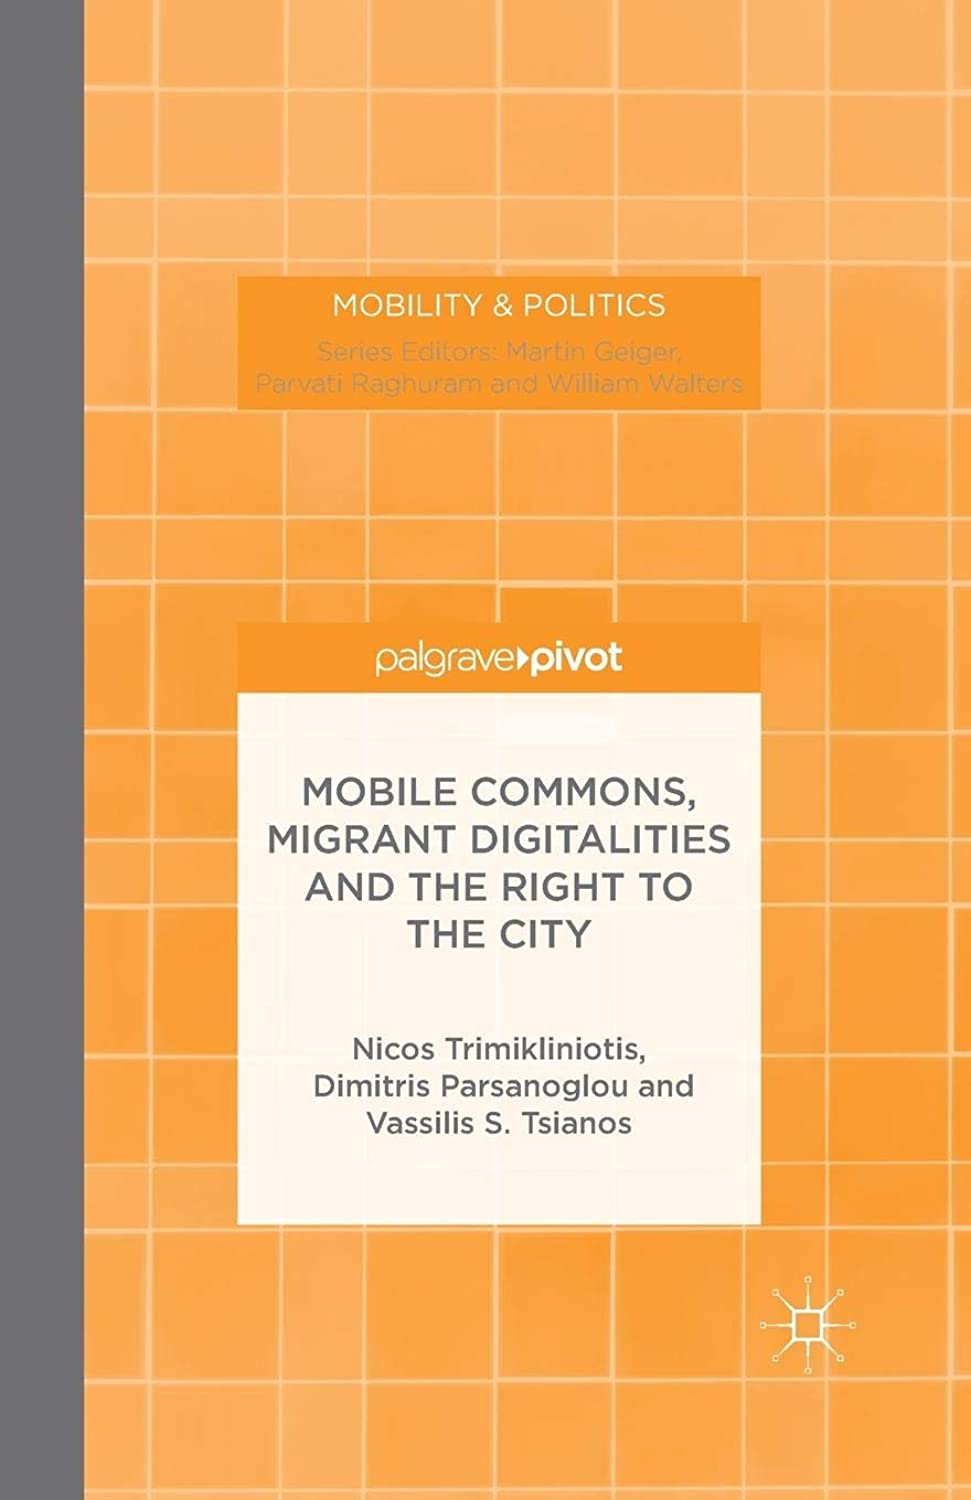 Mobile Commons, Migrant Digitalities and the Right to the City (Mobility & Politics)